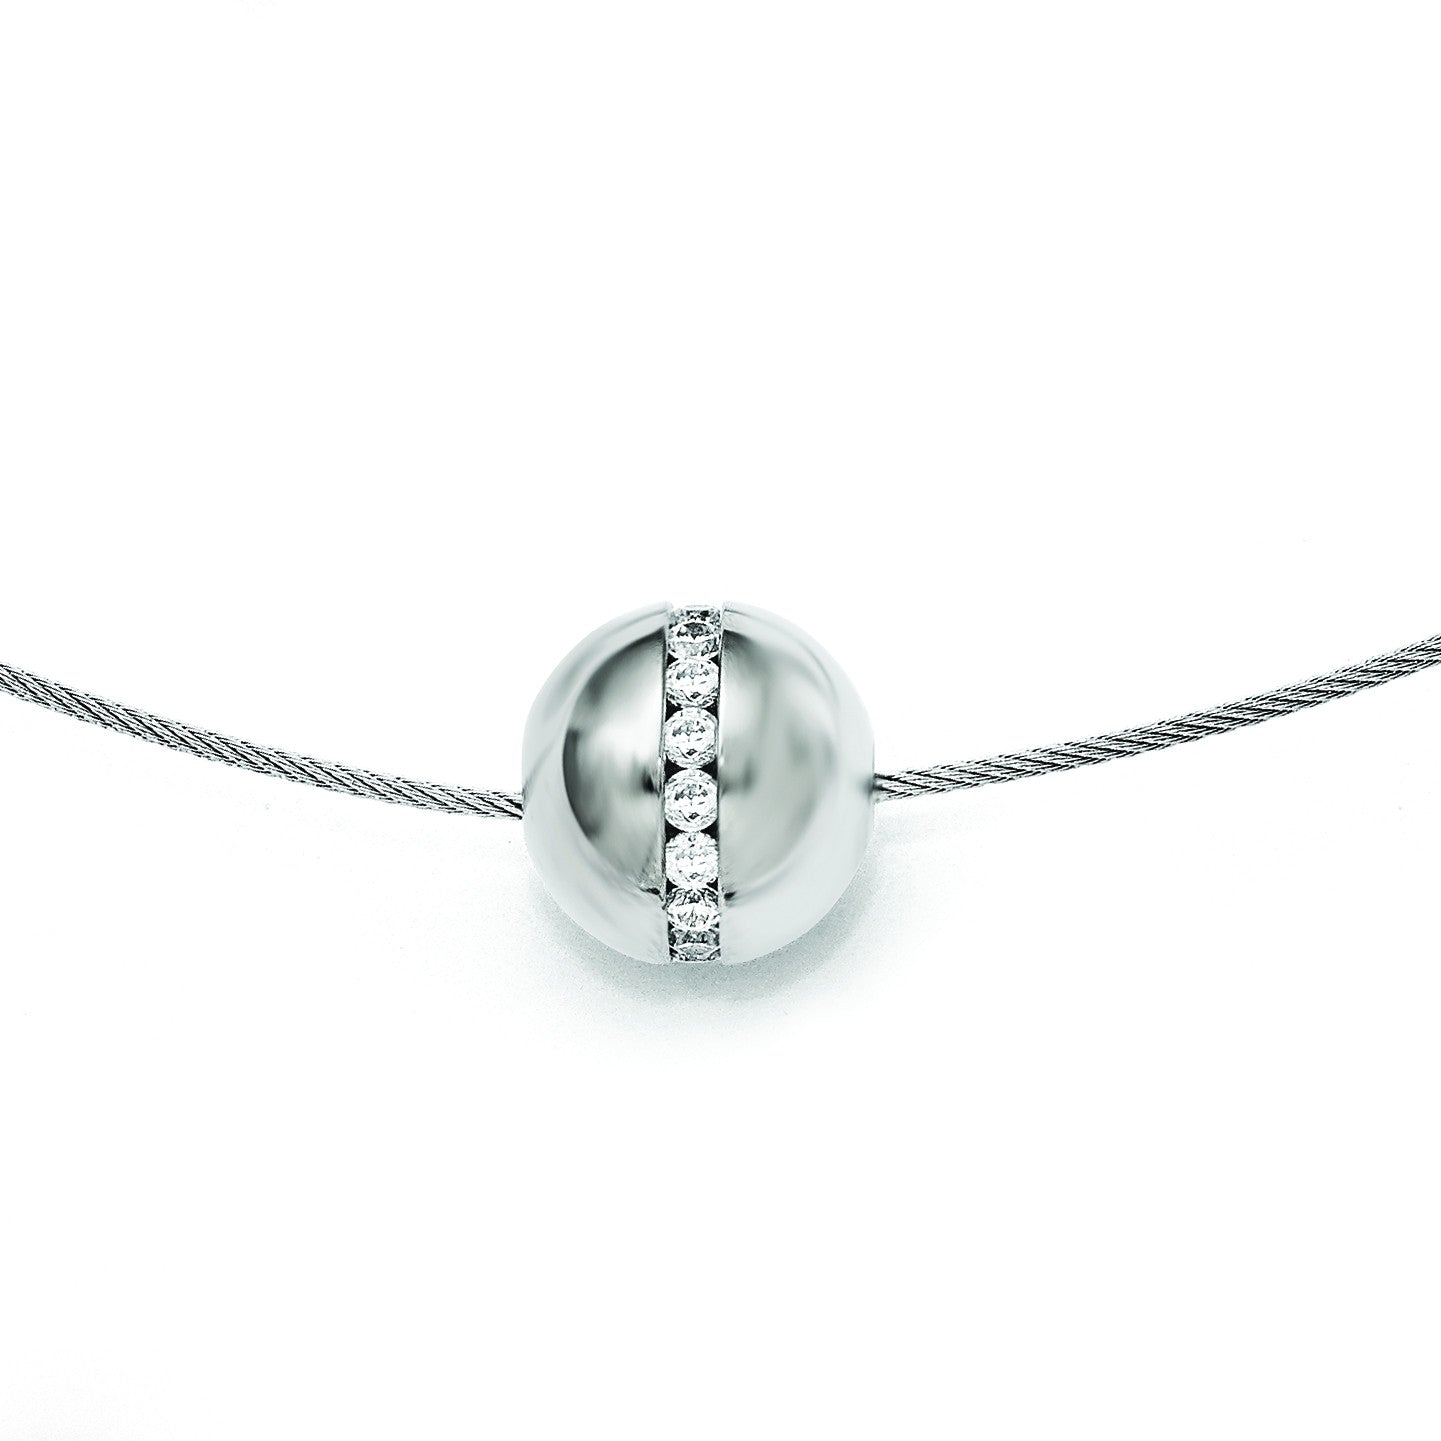 Titanium CZ Pendant with Polished Stainless Steel Wire Necklace TBN177-17 - shirin-diamonds